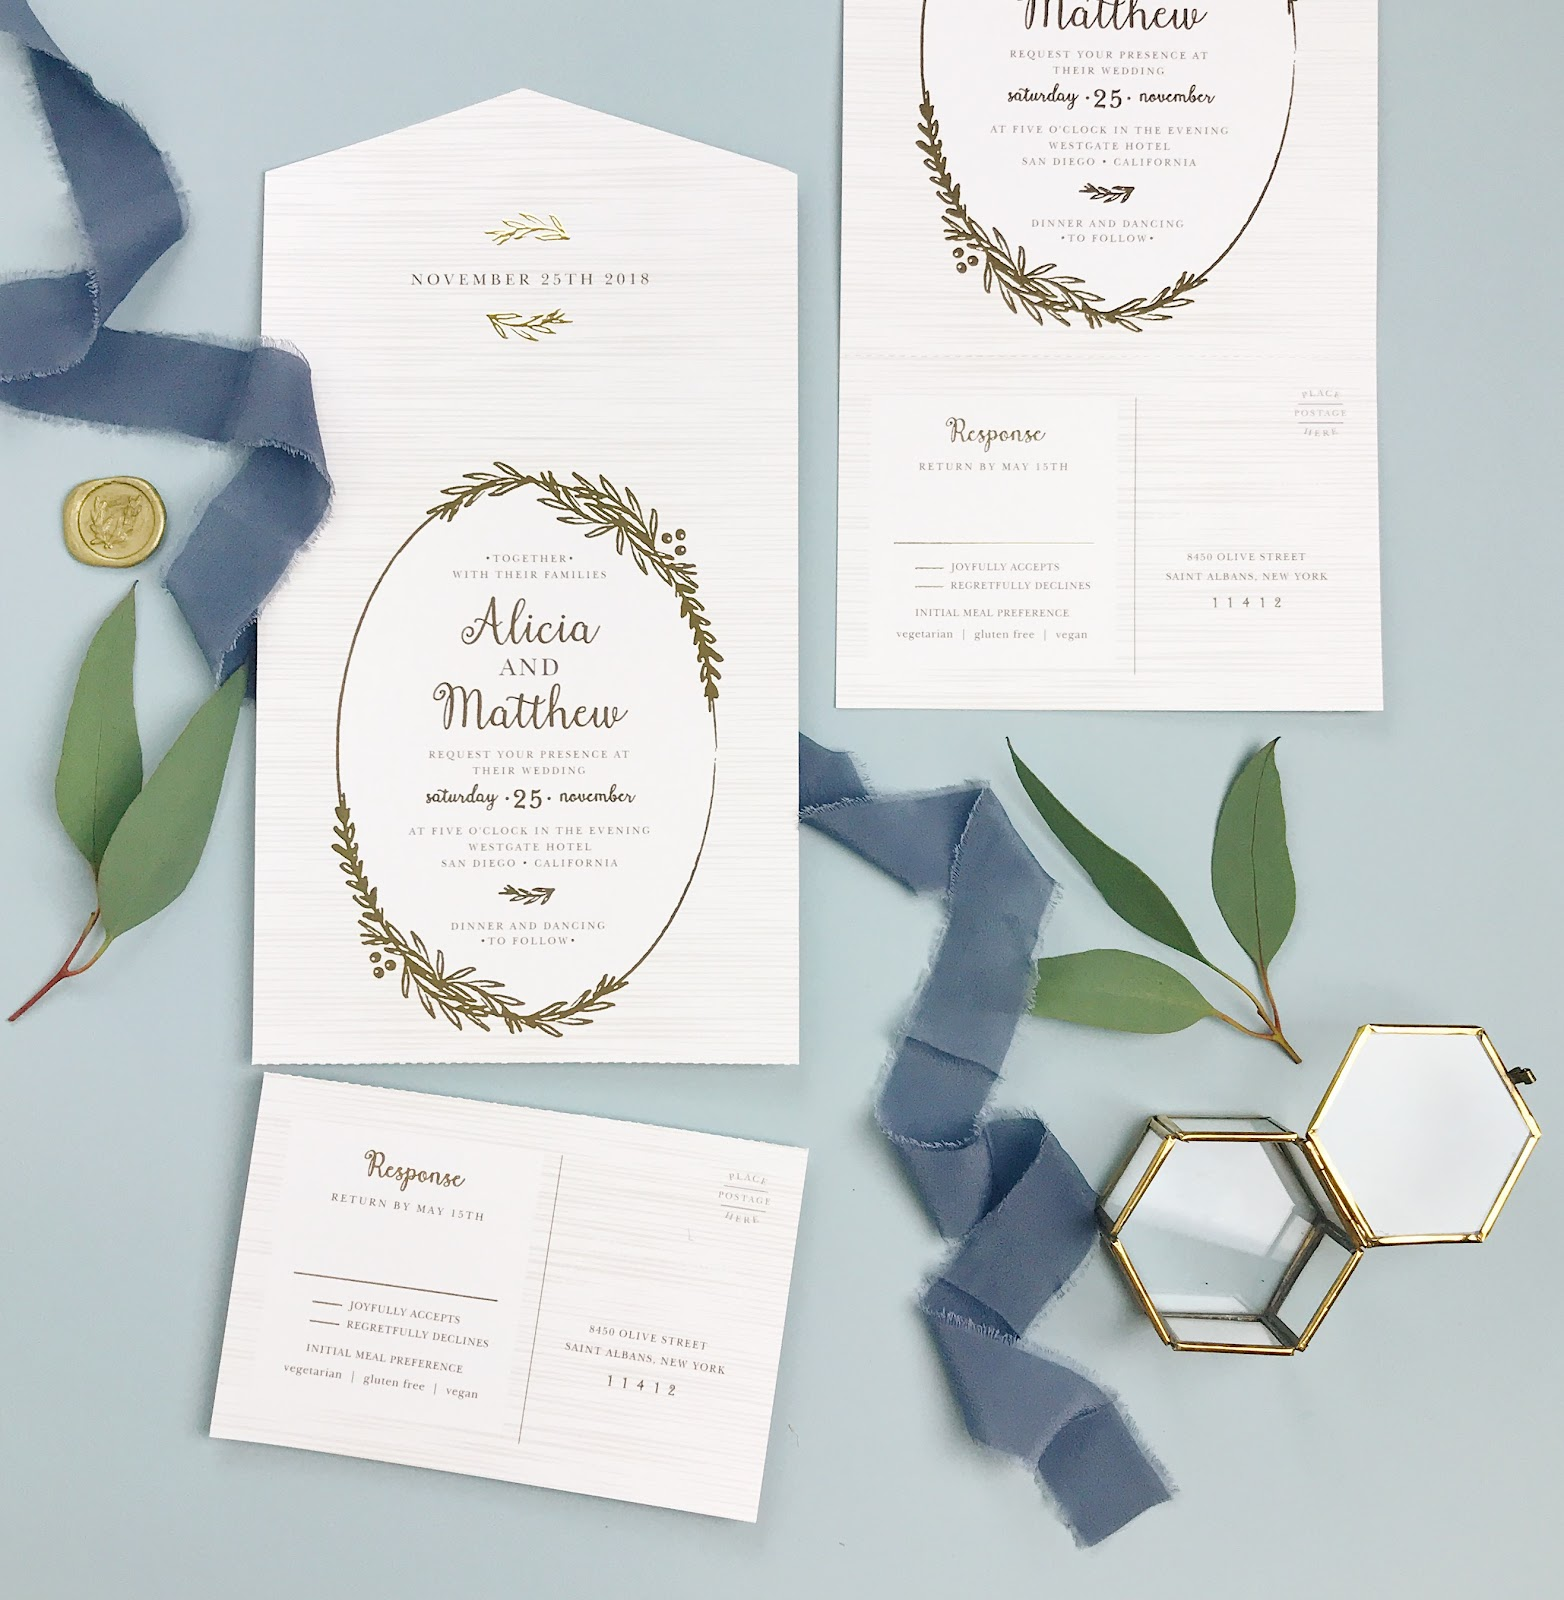 Dusty blue backdrop with gold no envelope wedding invite trend.